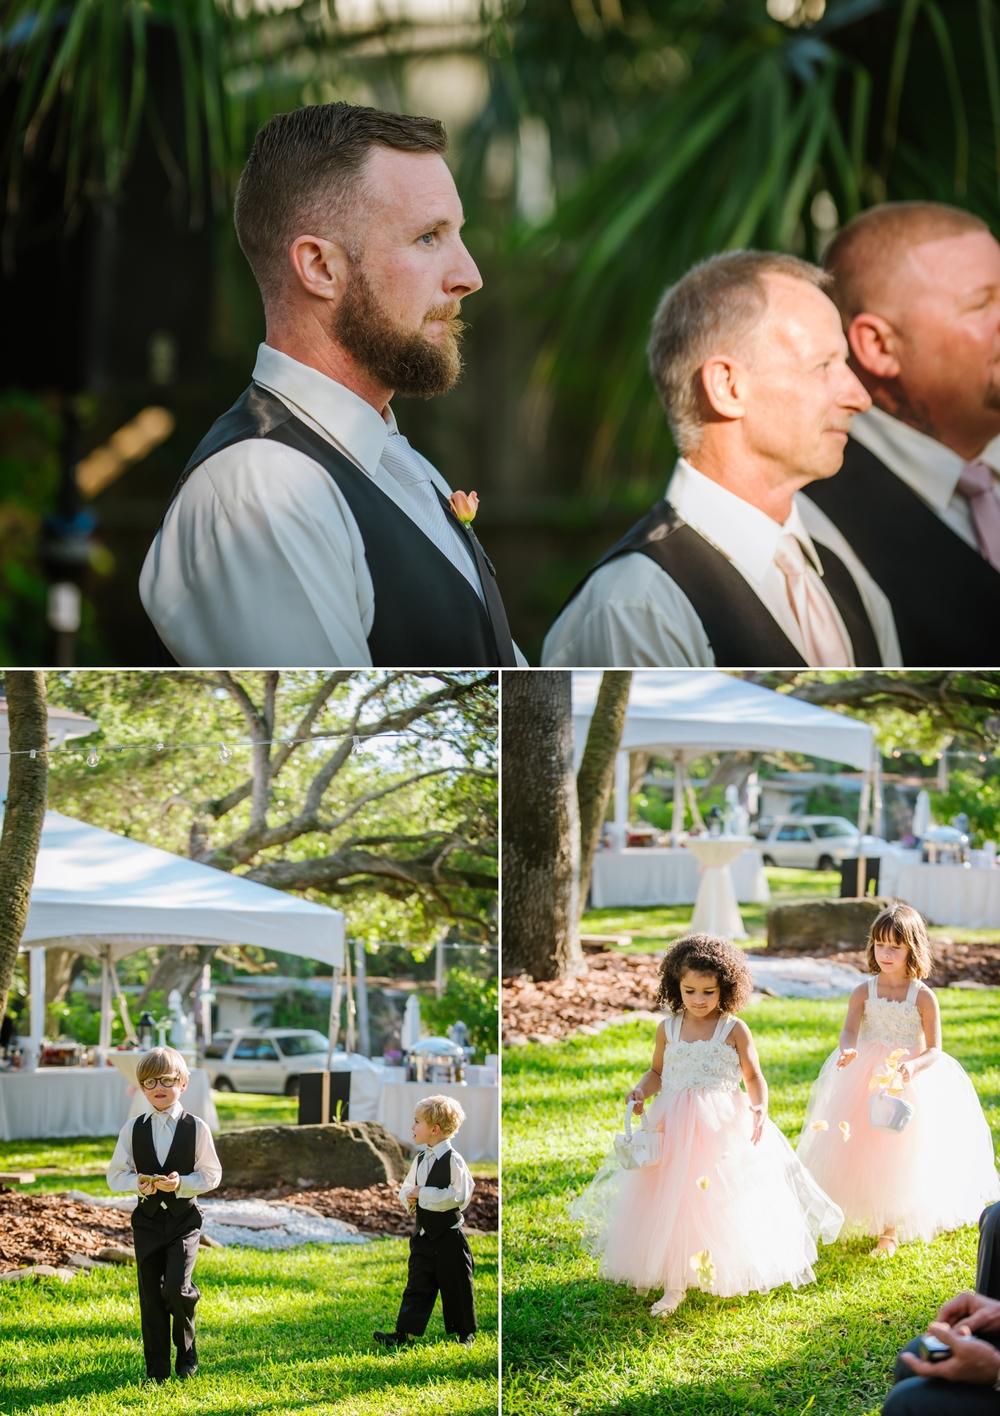 ashlee-hamon-photography-tampa-contemporary-colorful-bed-and-breakfast-wedding_0023.jpg